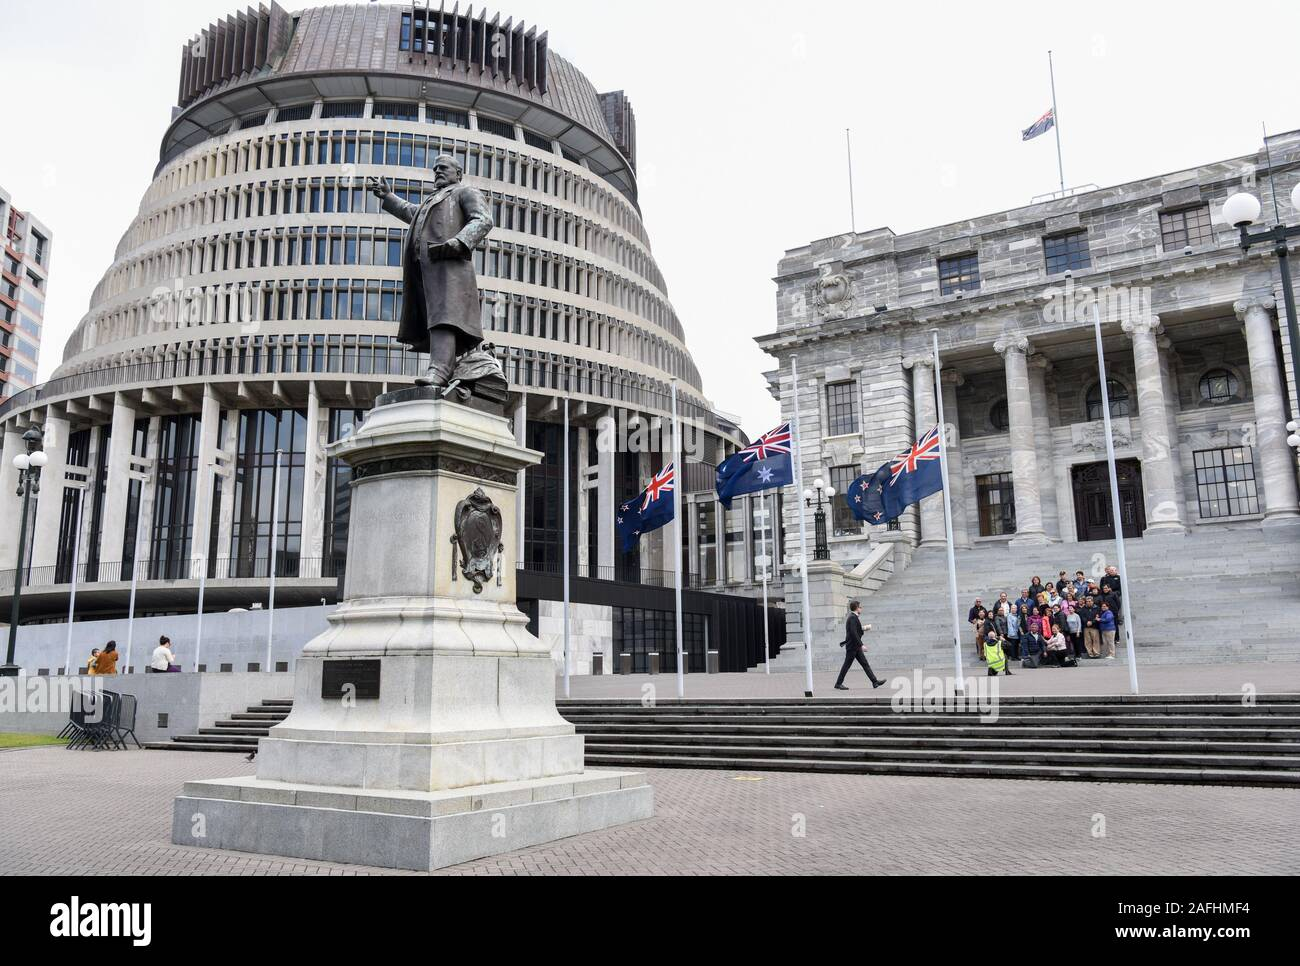 Wellington, New Zealand. 16th Dec, 2019. The New Zealand's national flags fly at half-mast in front of the parliament buildings to commemorate the victims of the White Island volcanic eruption in Wellington, New Zealand, on Dec. 16, 2019. Questions need to be asked and answered with regard to the casualties caused by the White Island volcanic eruption, said New Zealand Prime Minister Jacinda Ardern on Monday. People across New Zealand observed a one-minute silence on Monday in honor of the victims of the White Island volcanic eruption. Credit: Guo Lei/Xinhua/Alamy Live News Stock Photo